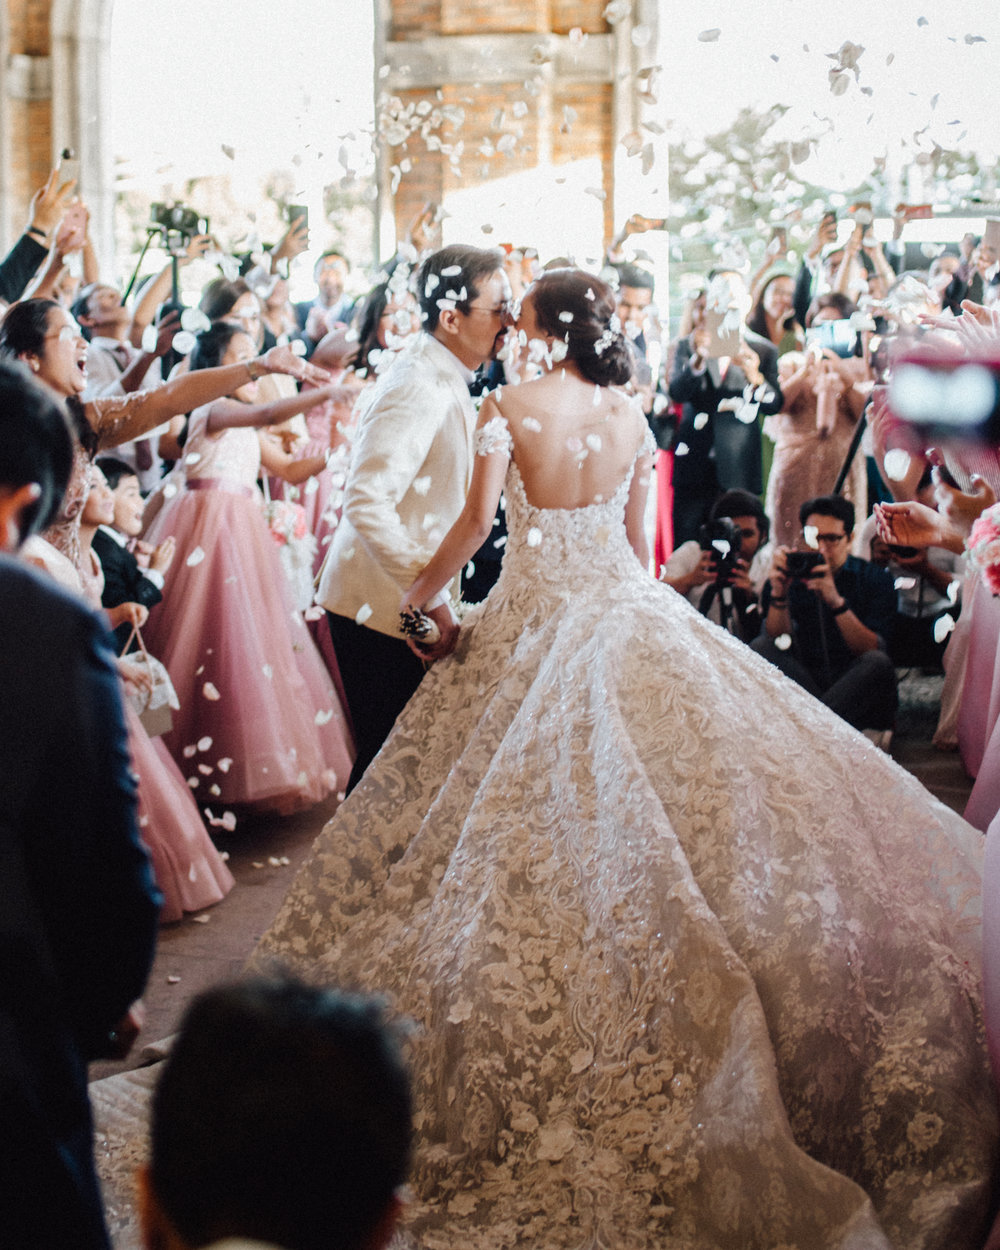 The Travel Chest - 6-8 Minute Film400 PhotographsFull Wedding Day Coverage2-3 Cinematographers/Photographer30-60 second InstaClipThe Travel Chest is my newest package, specifically designed for destination weddings and elopements. If there's one thing I want to capture, it's your dreamy, moody, adventurous and intimate time together. And what better way than in a faraway land, full of new sights and experiences. Myself and my partner(s) will be with you the entire wedding day, capturing the wonder of your location and the awe of your getaway love. With the astounding visuals, any heartfelt speeches, and an amazing cinematic soundtrack, your destination wedding film and photographs will be an heirloom you'll treasure for generations. Magnificently crafted into a 6-8 minute film, 150 edited photographs, and packaged into a USB flashdrive as an .mov file and .jpg files (with a select 120 photos in 4x6 prints), all imagery will be completely free to be uploaded on any of your online social media outlets! Trust me, you'll want to be sharing everything that The Travel Chest has to offer.Especially interested in:Italy, Portugal, Scotland, Croatia, Poland, Hawaii and The Philippines